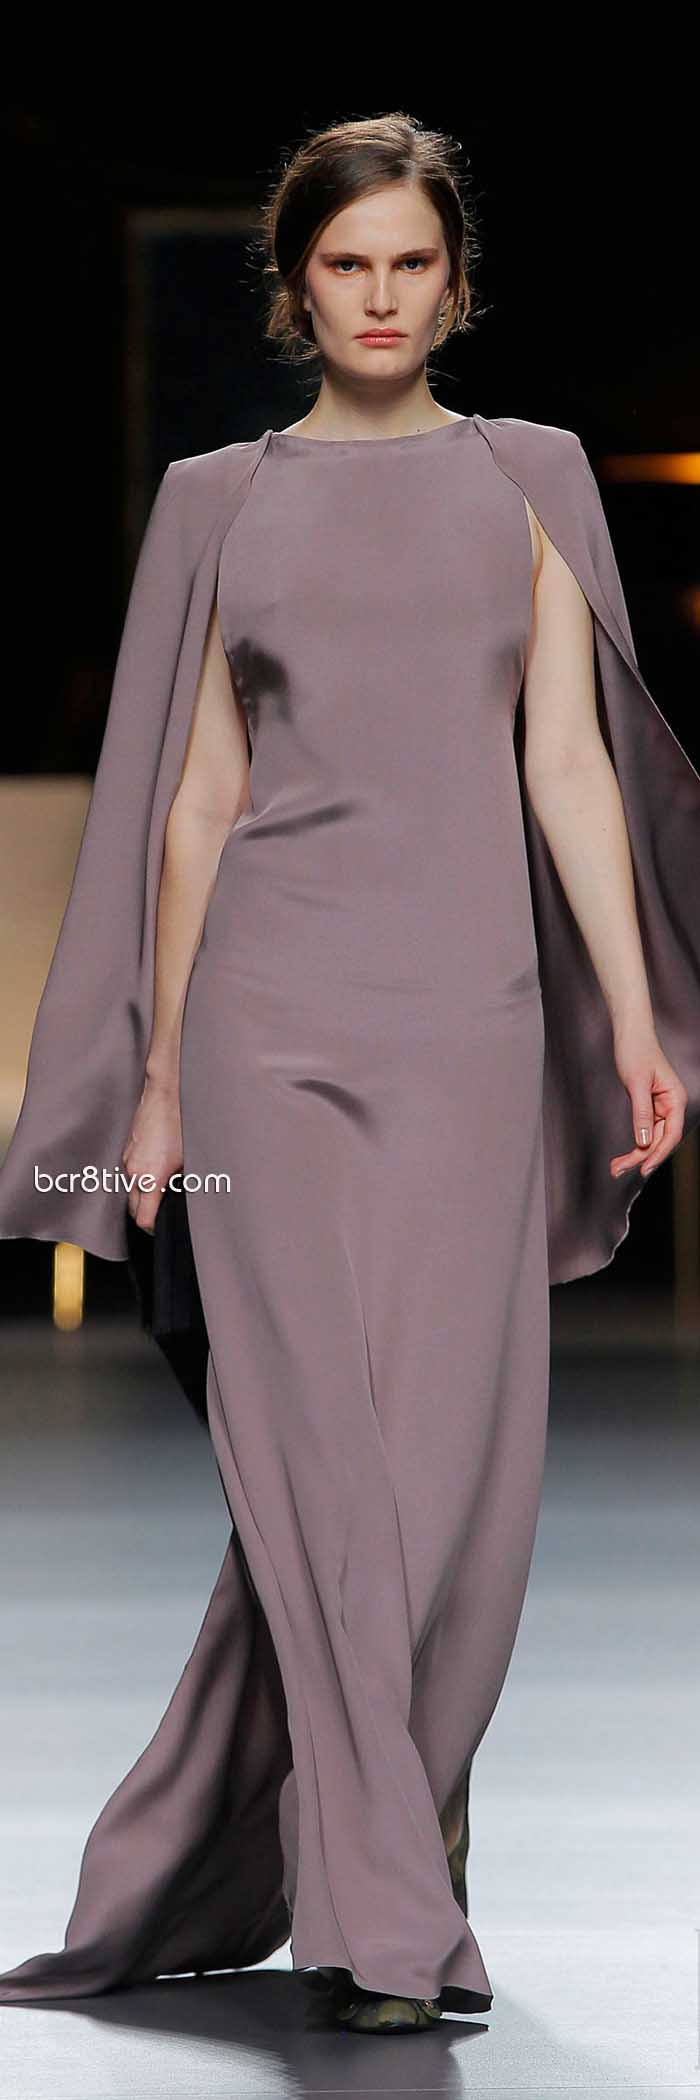 Juanjo Oliva Fall Winter 2013-14